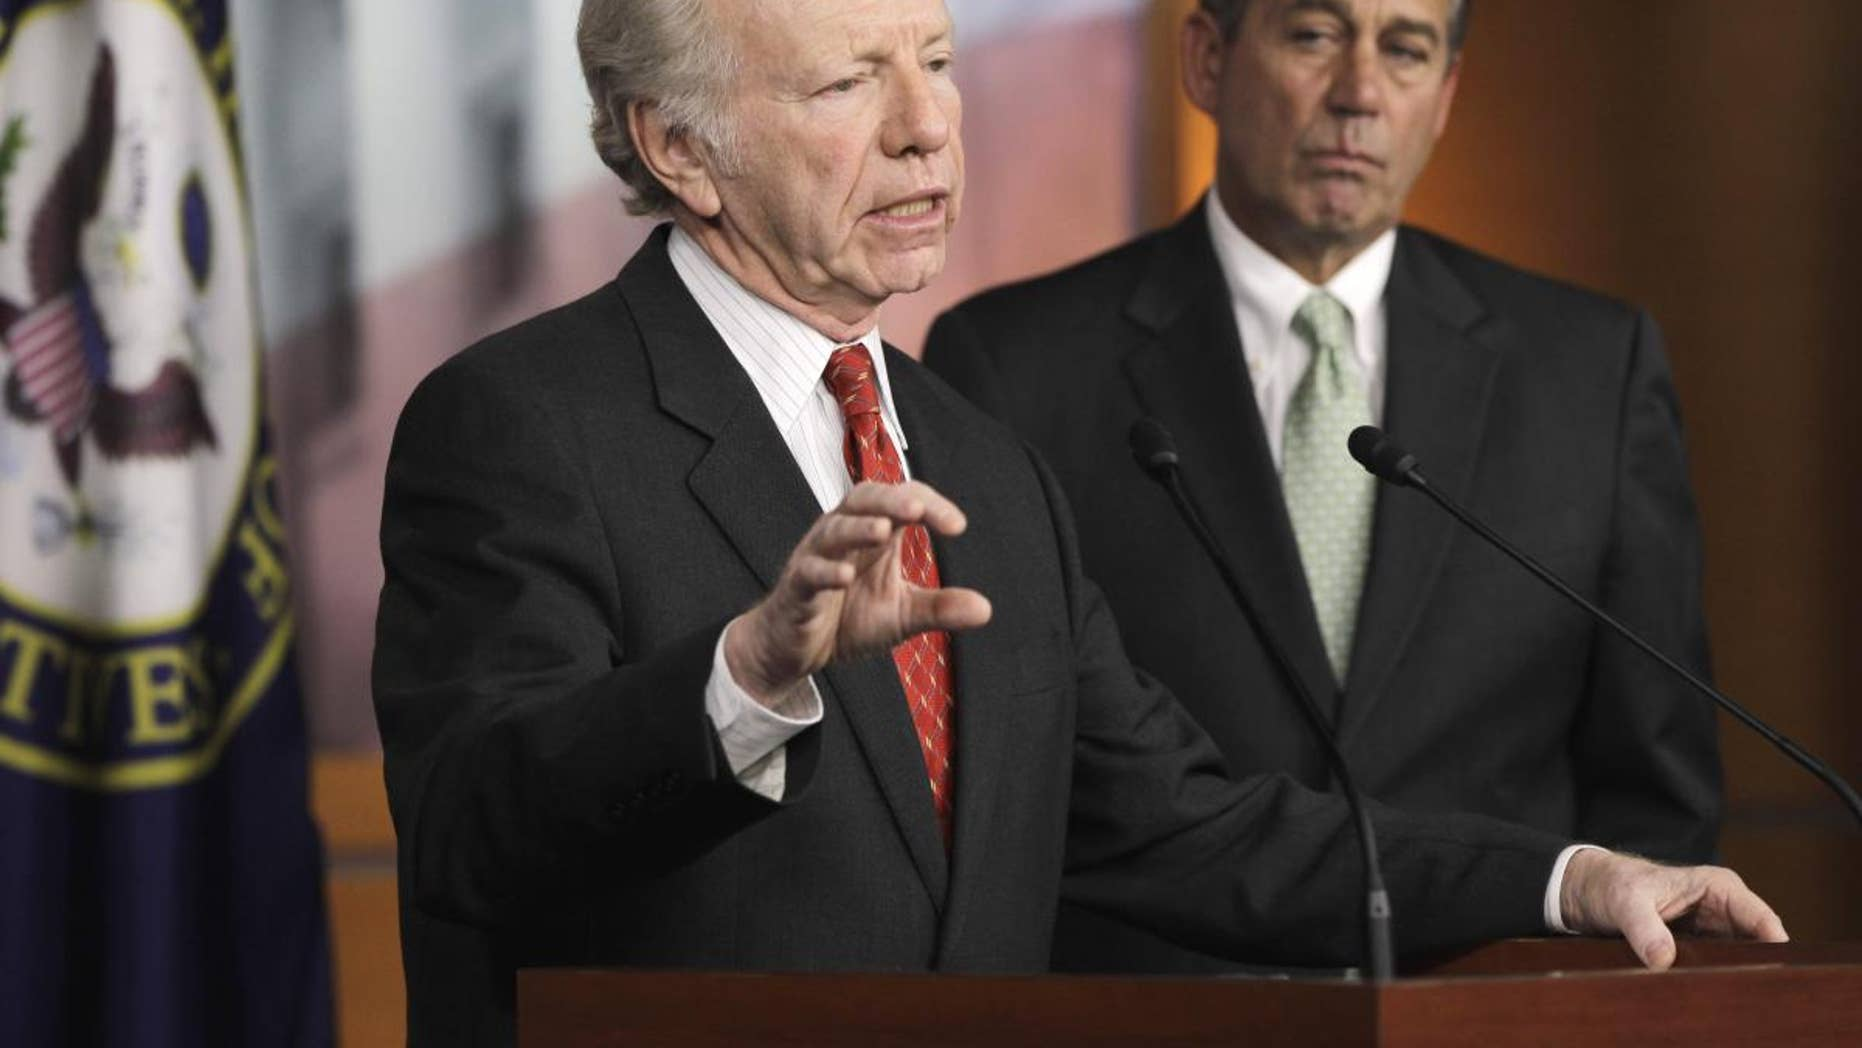 Sen. Joseph Lieberman, I-Conn., left, accompanied by House Speaker John Boehner of Ohio, gestures during a news conference on Capitol Hill in Washington, Wednesday, Jan. 26, 2011, to discuss the introduction of legislation on the DC Opportunity Scholarship Program. (AP Photo/Charles Dharapak)